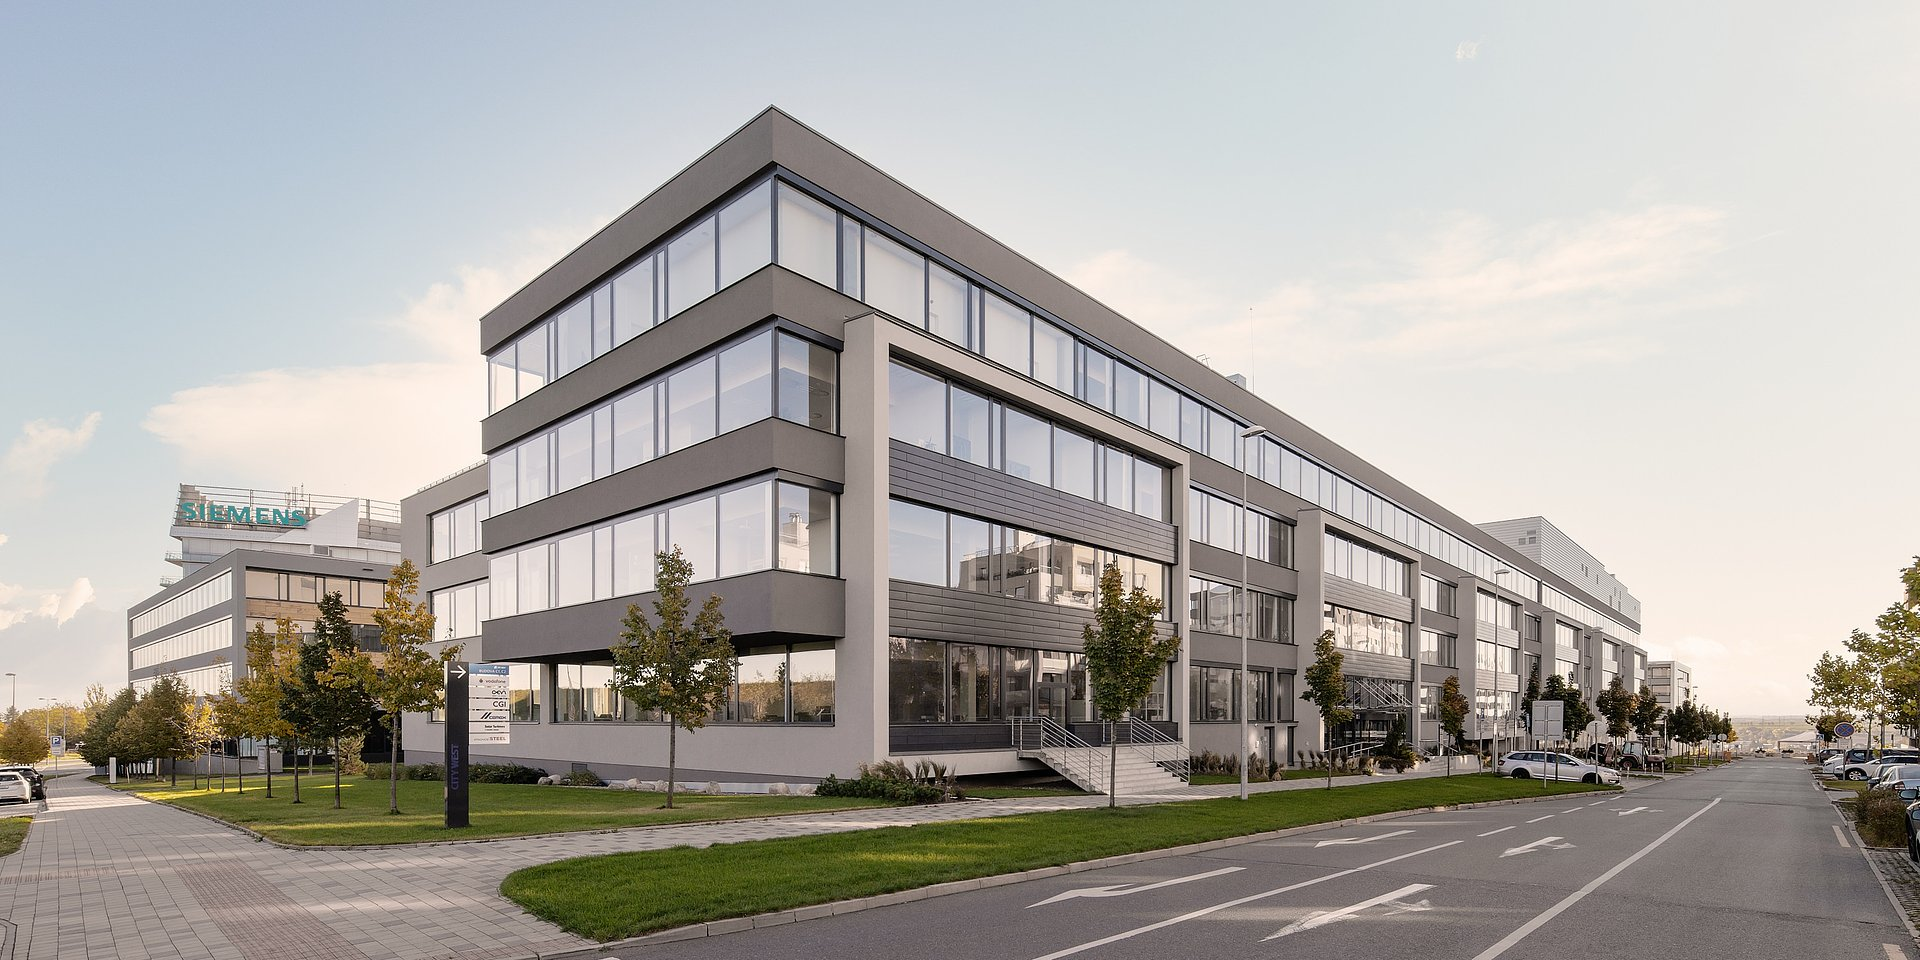 We negotiated financing for the 2 billion CZK purchase of CITY WEST C1 and C2